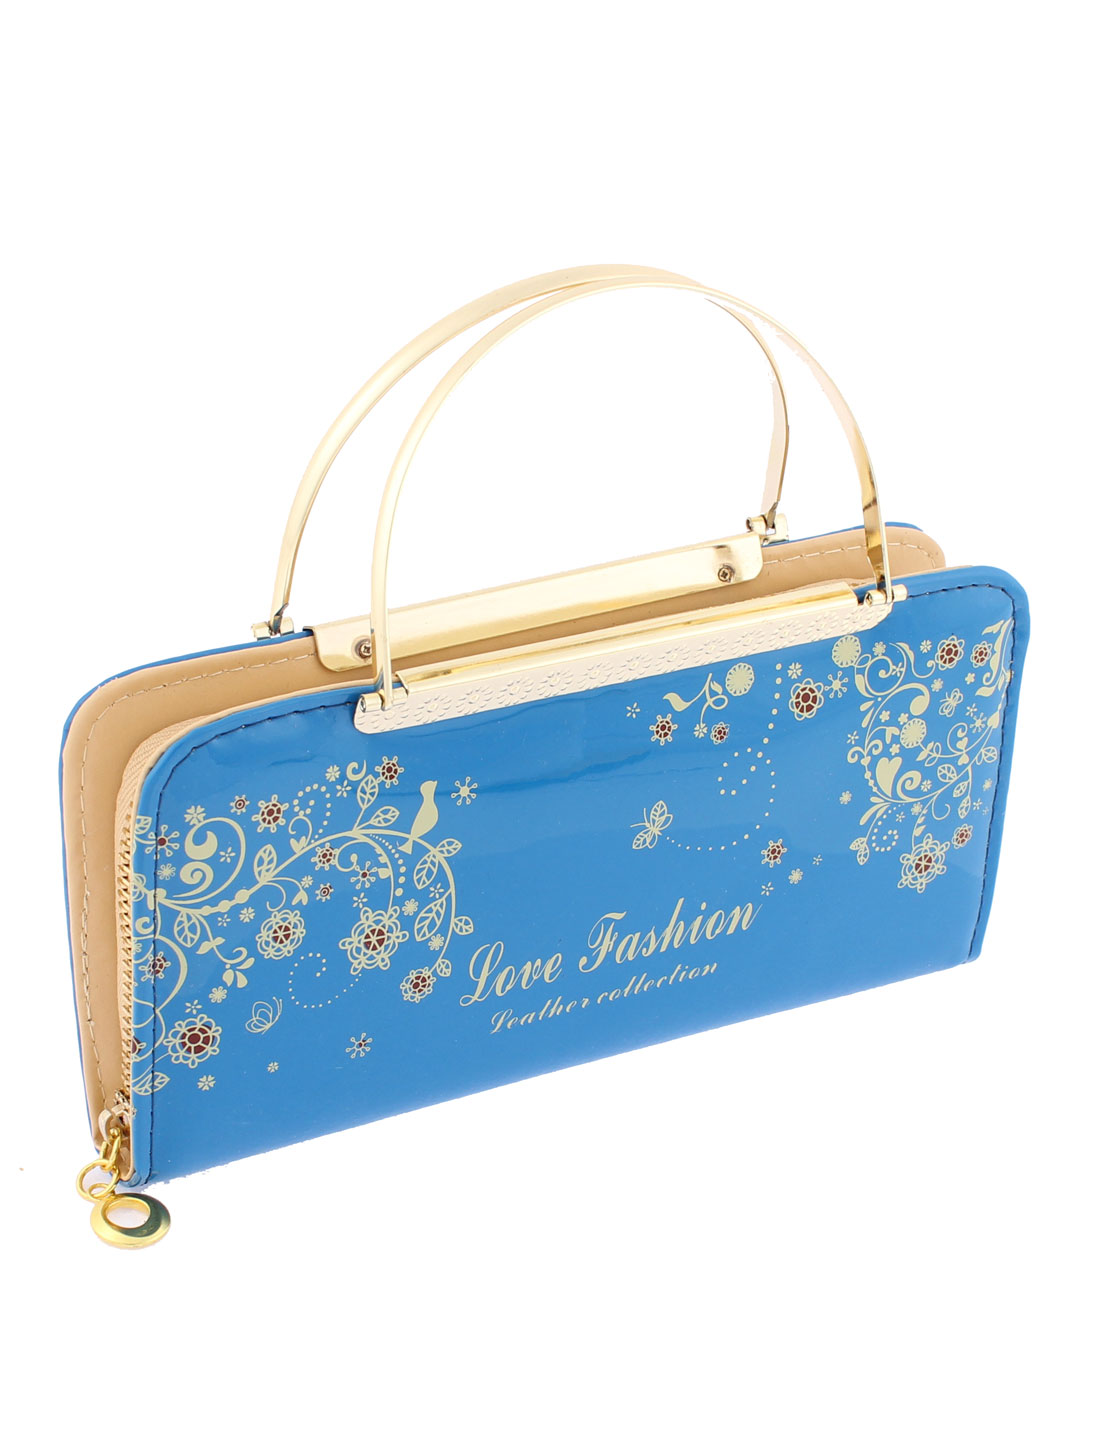 Faux Leather Zip Up Floral Letters Print Handbag Purse Evening Clutch Bag Blue